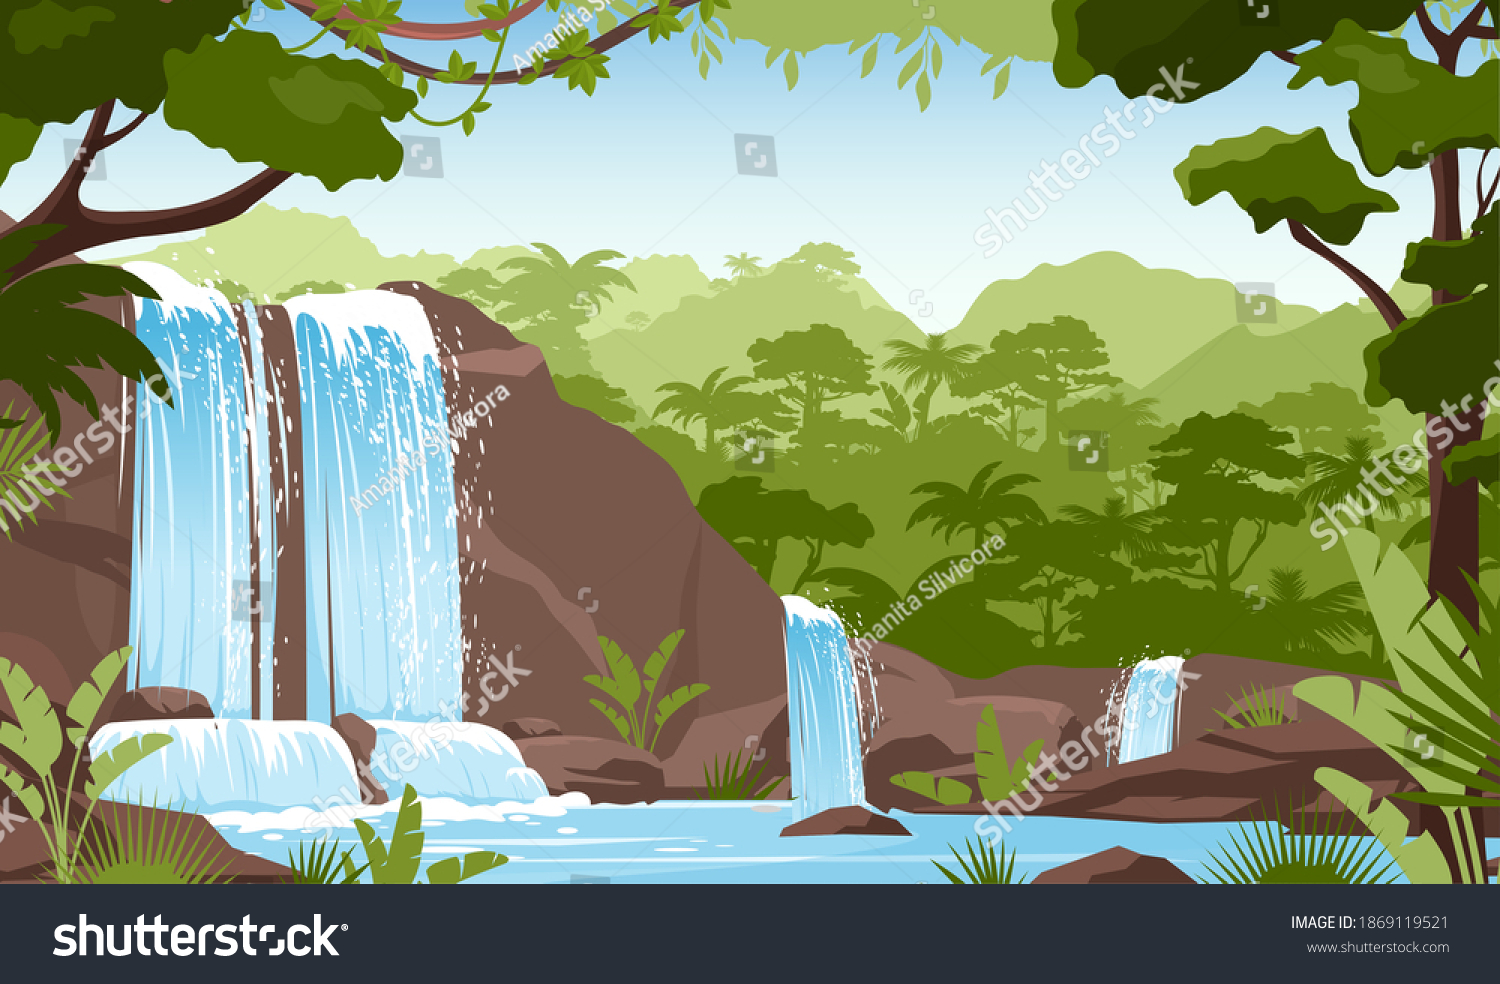 Waterfall in green jungle rainforest vector illustration. Cartoon tropical panoramic landscape with river water falling down from mountain rocks, fresh greenery of wild trees and bushes background #1869119521